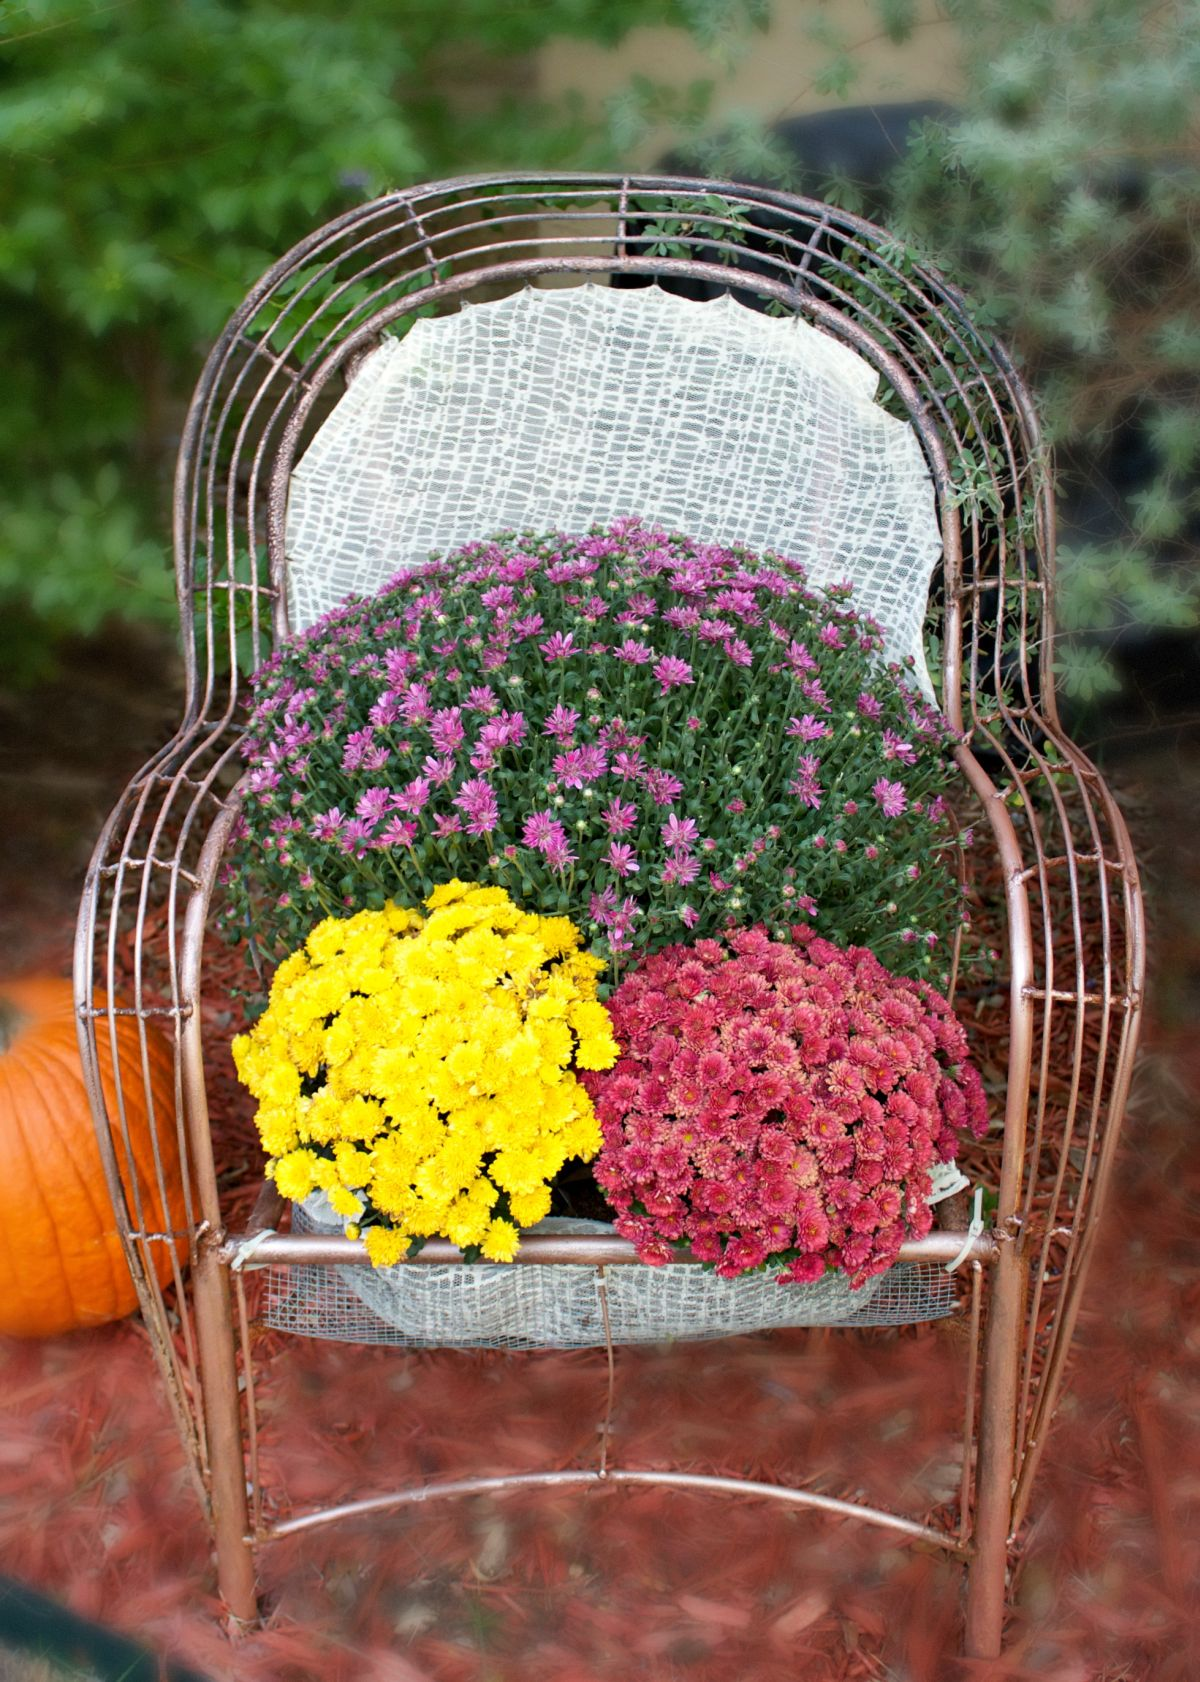 Turn a Chair into a Garden Bed -Decor for Garden